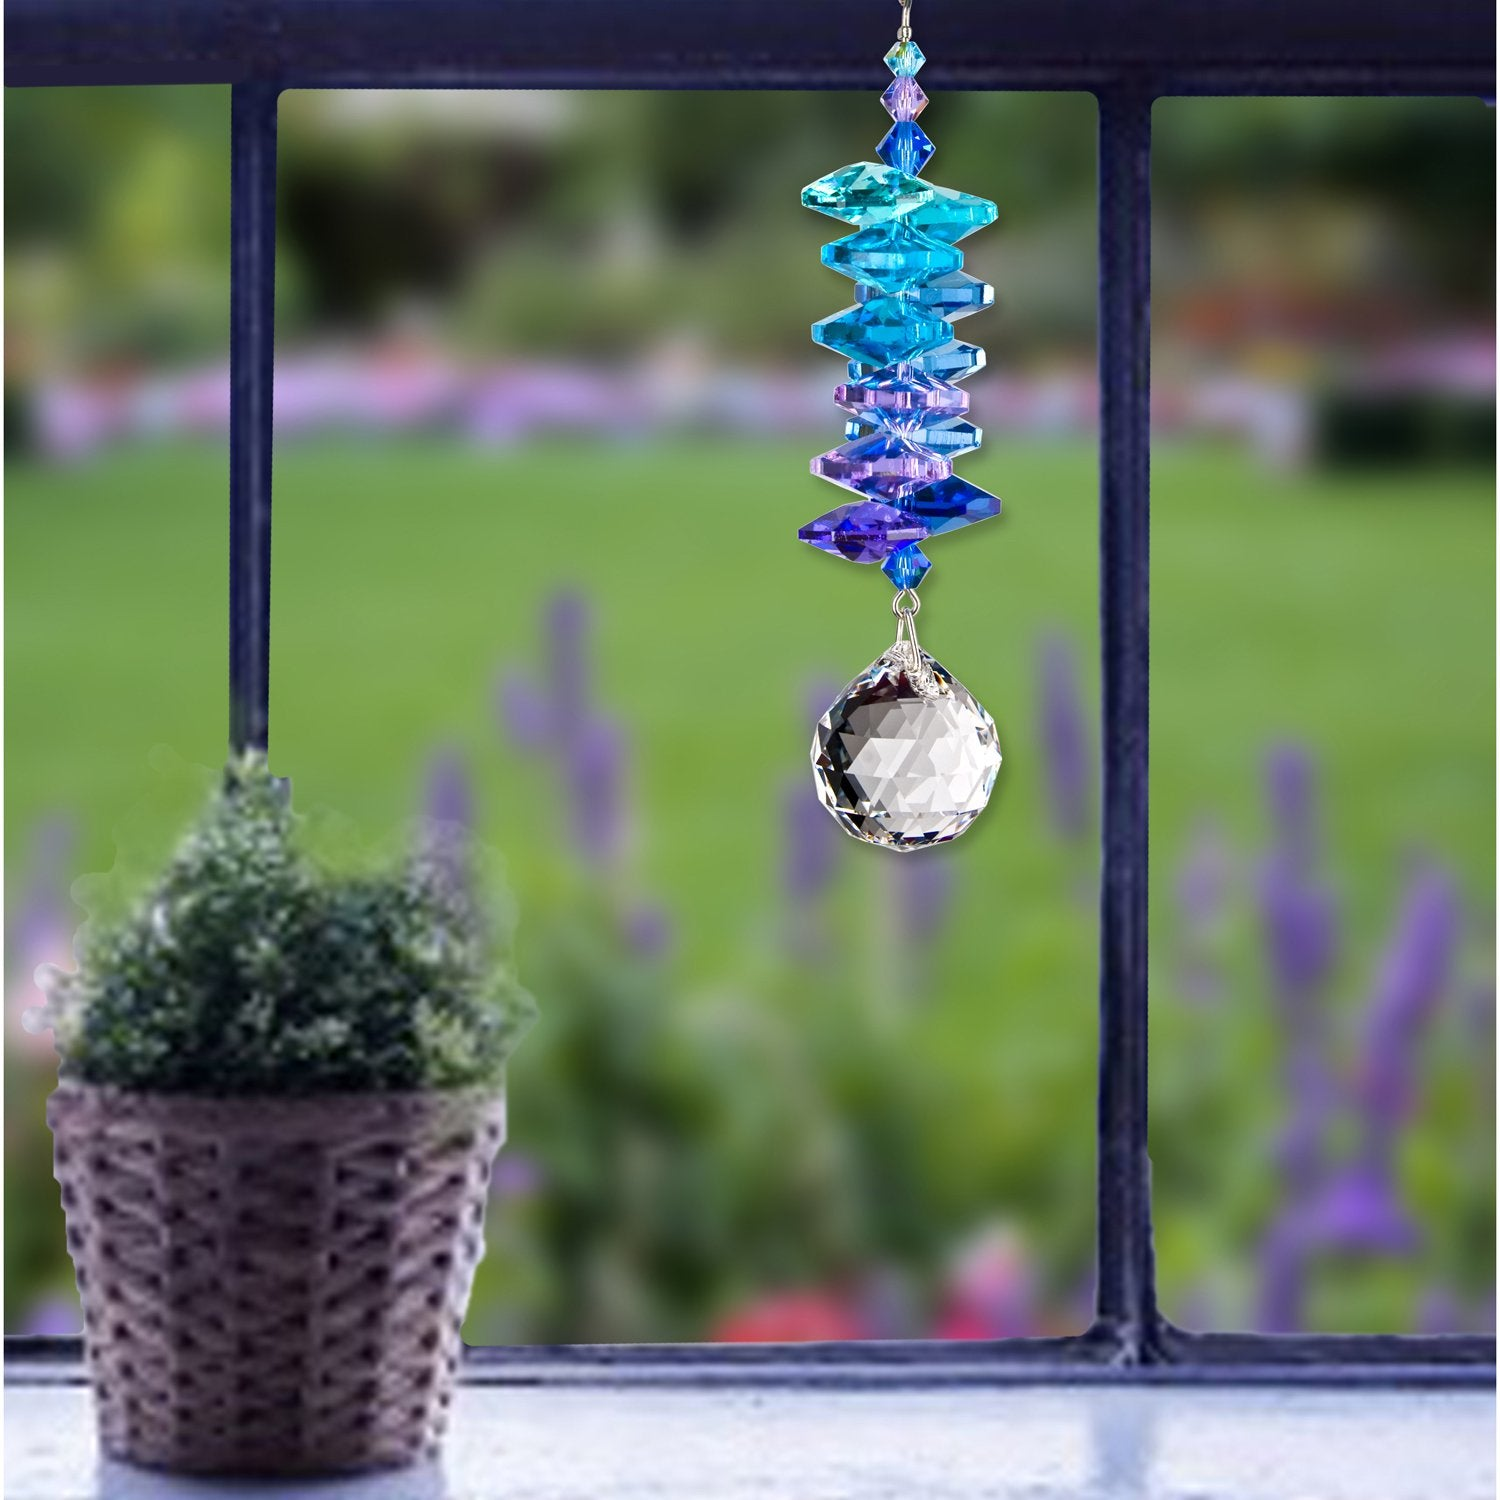 Crystal Moonlight Cascade Suncatcher - Ball lifestyle image